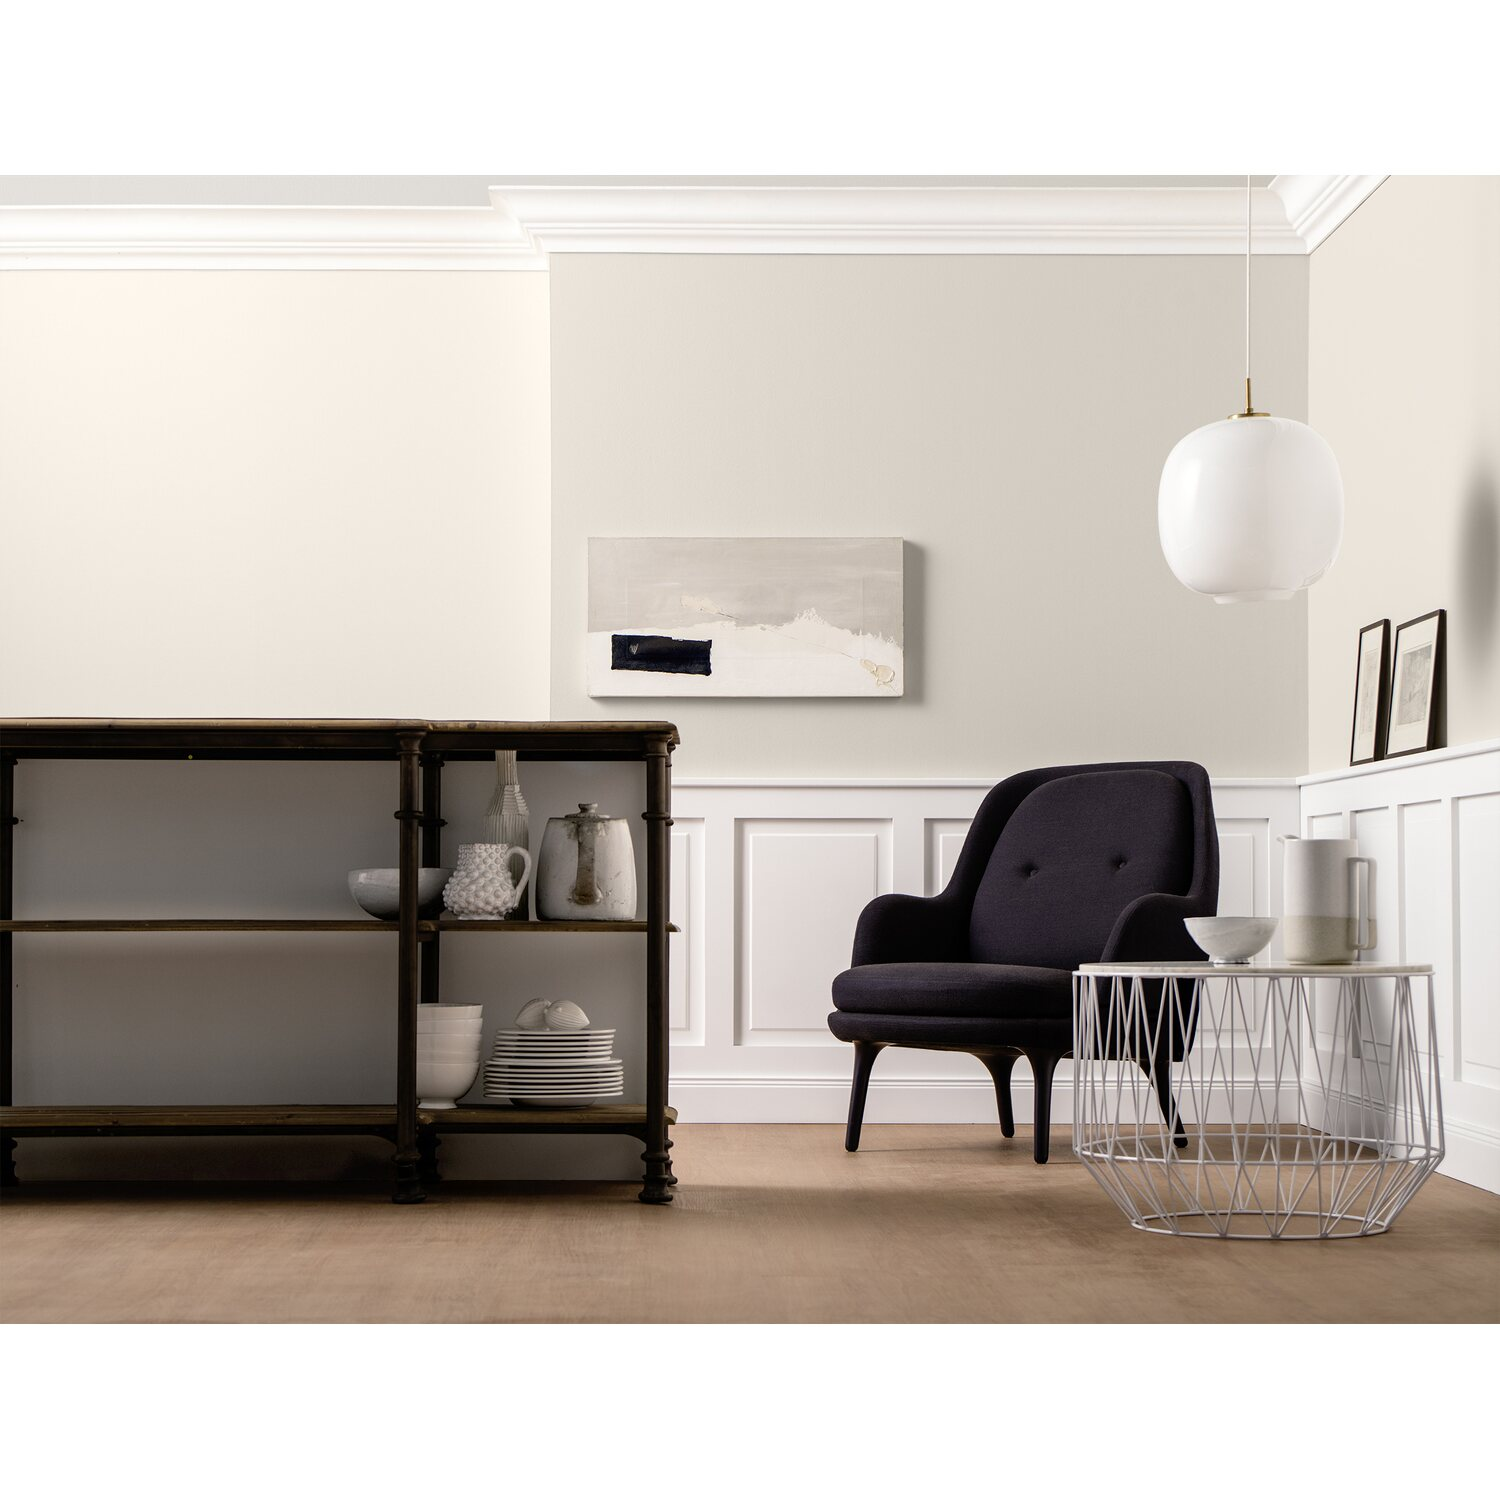 sch ner wohnen architect 39 s finest westerpark samtmatt 2 l kaufen bei obi. Black Bedroom Furniture Sets. Home Design Ideas